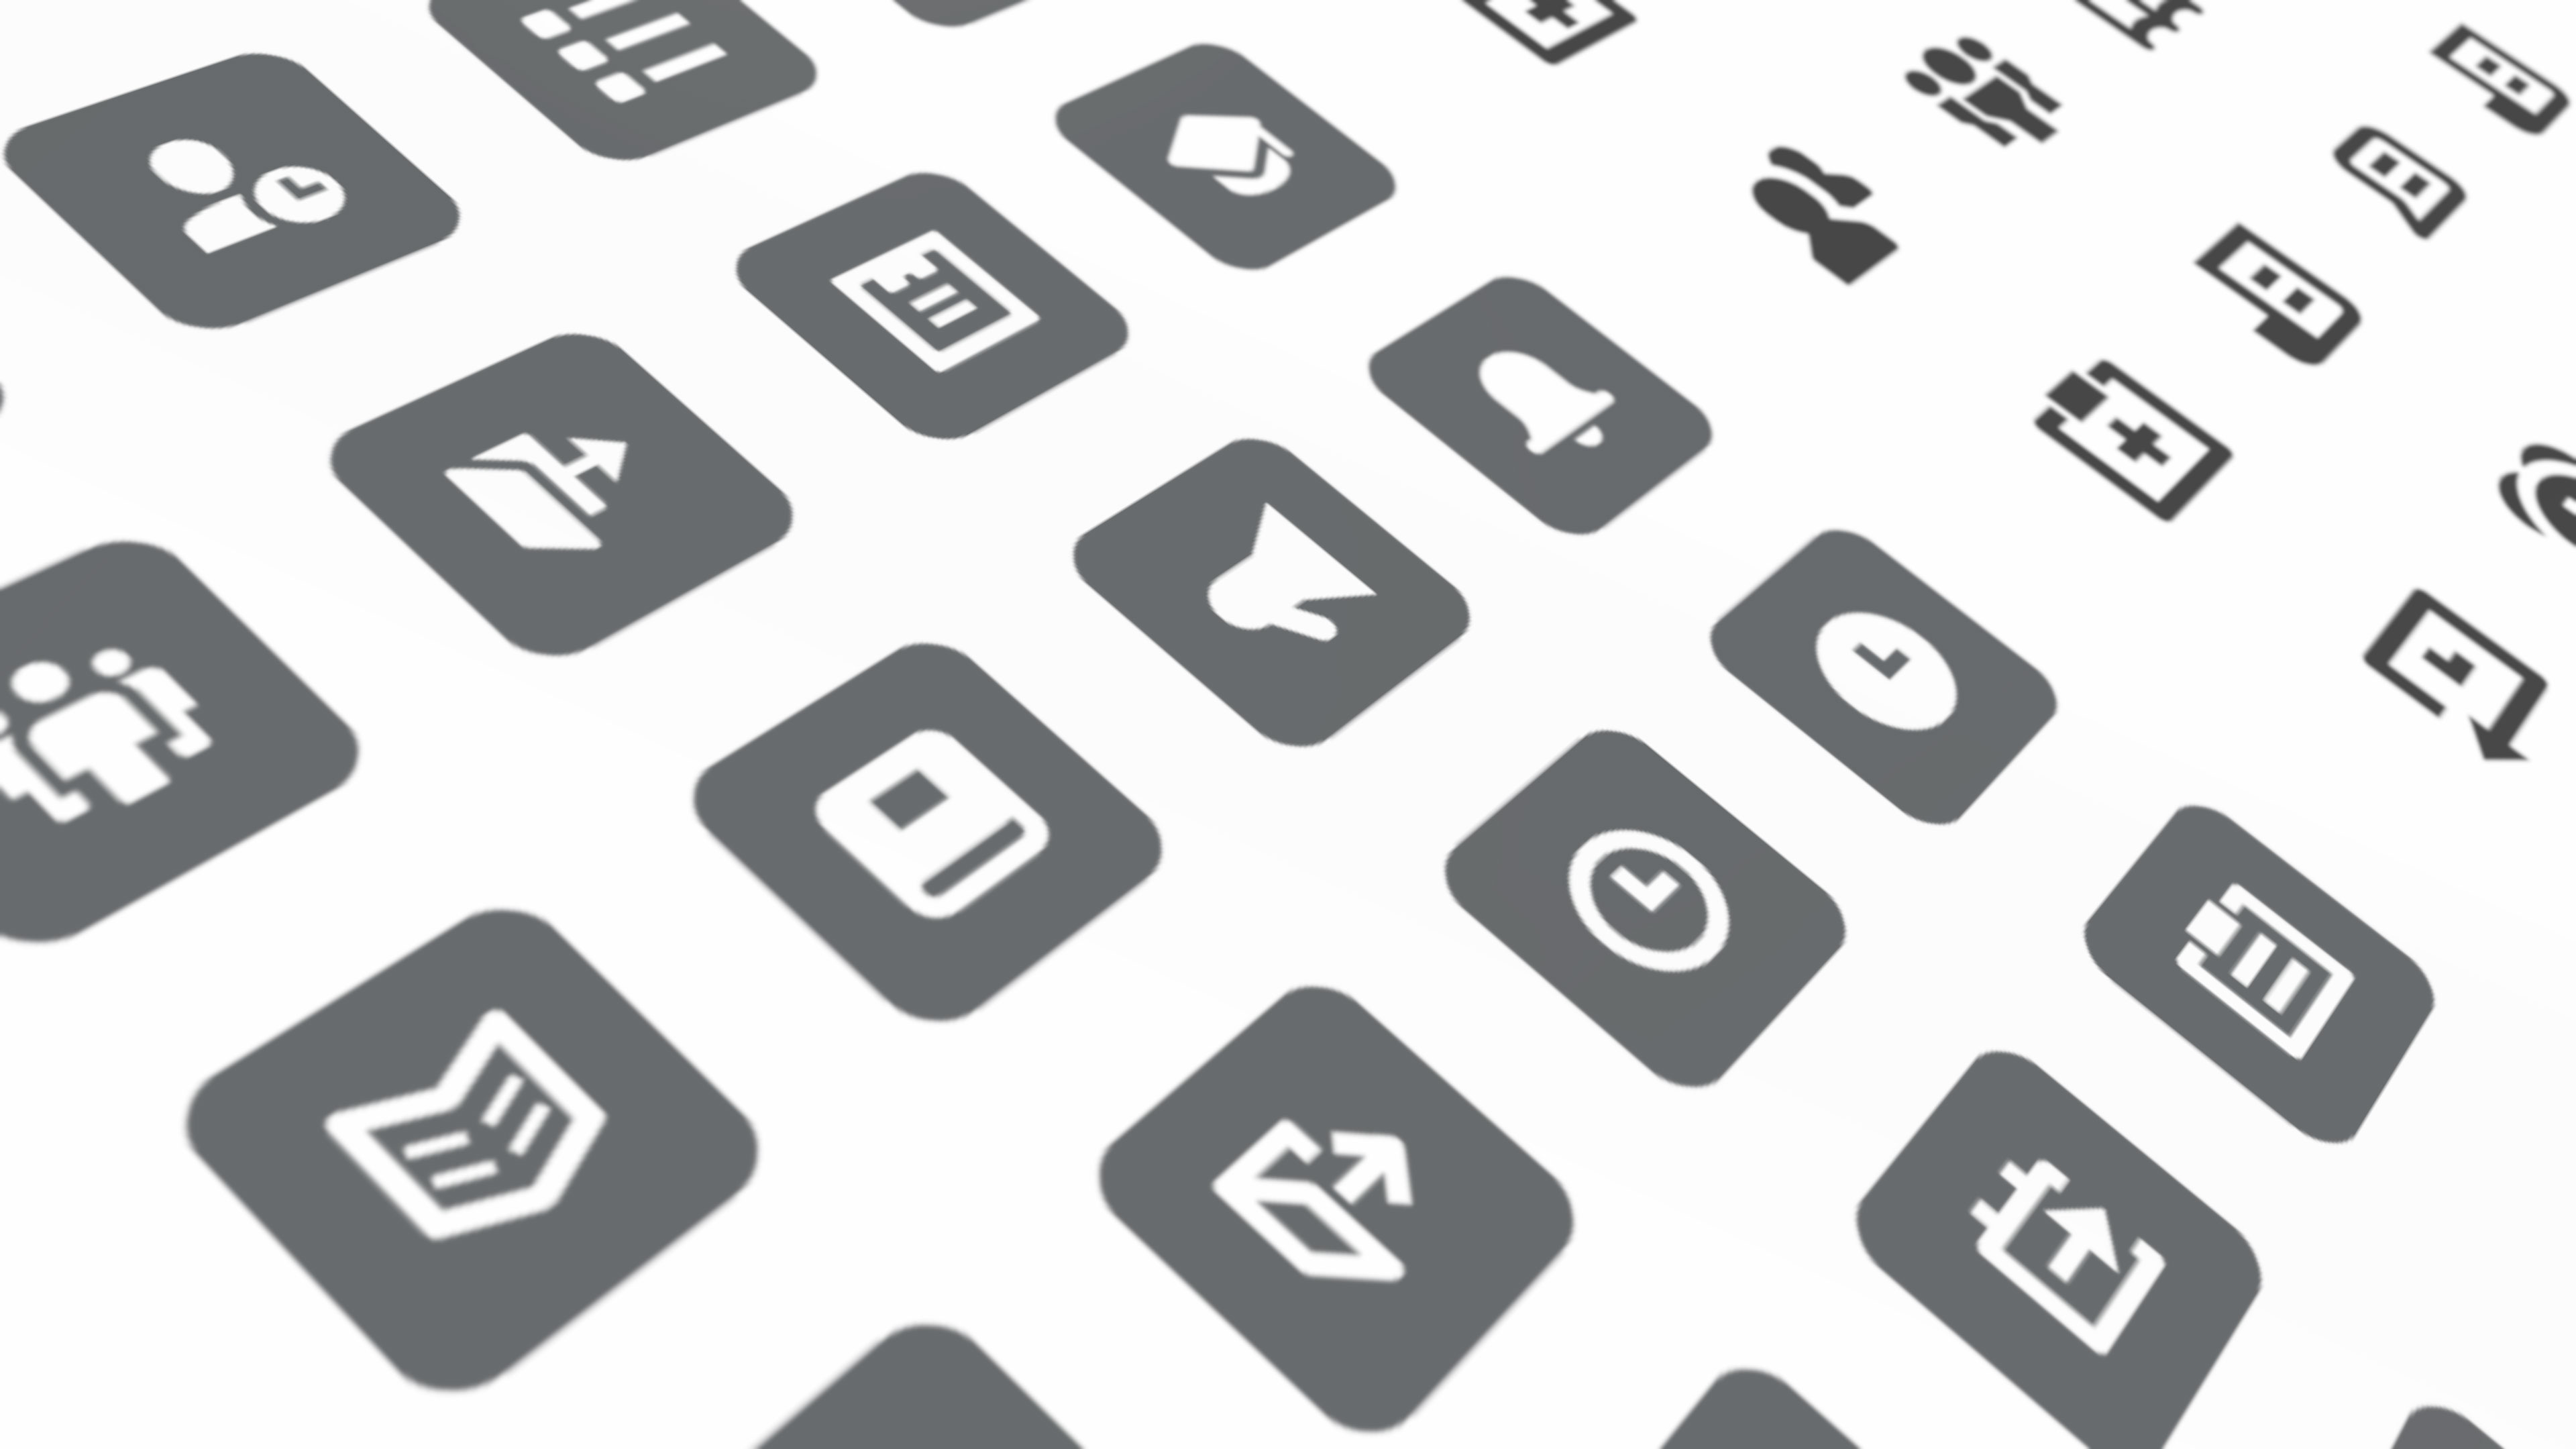 icons used for the CRM software